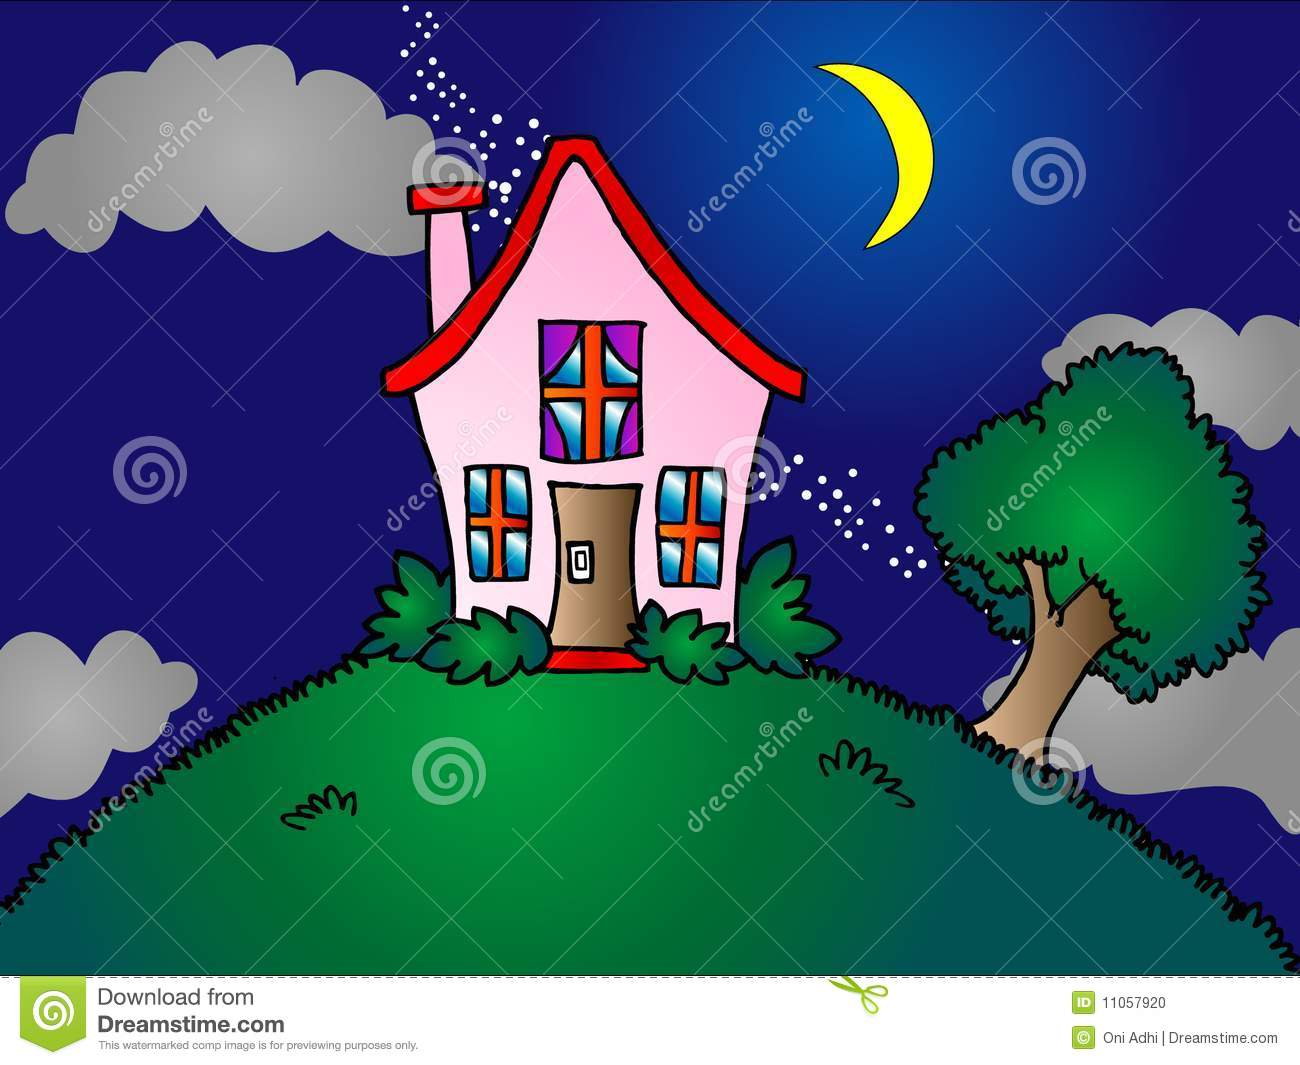 house on hill clipart - photo #24